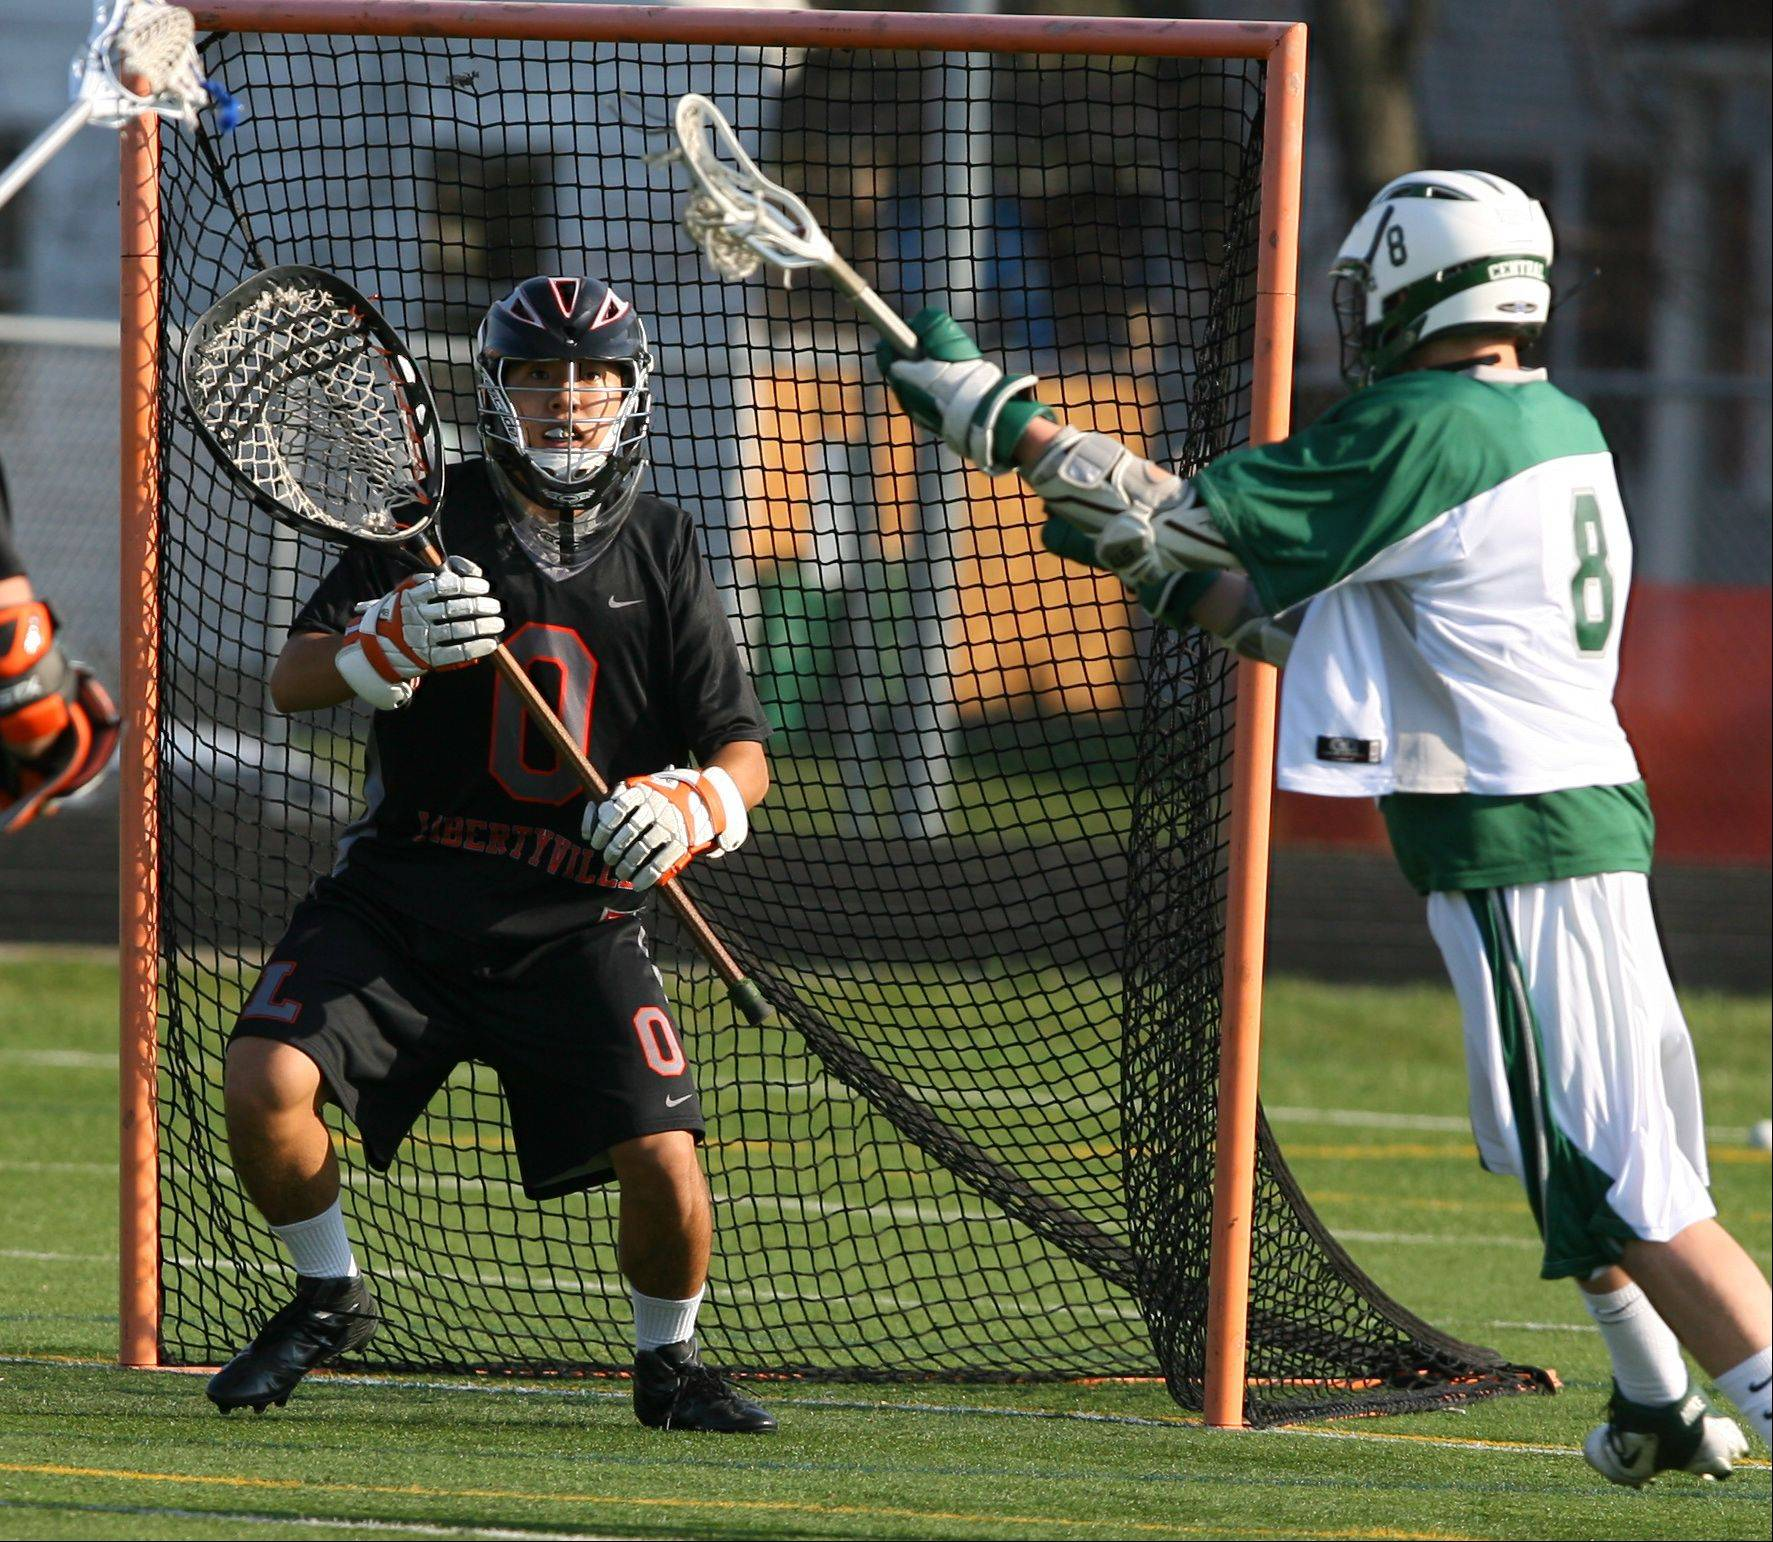 Libertyville junior goalie Cole Blazer earned all-American honors in helping the Wildcats advance to the state Final Four this spring.